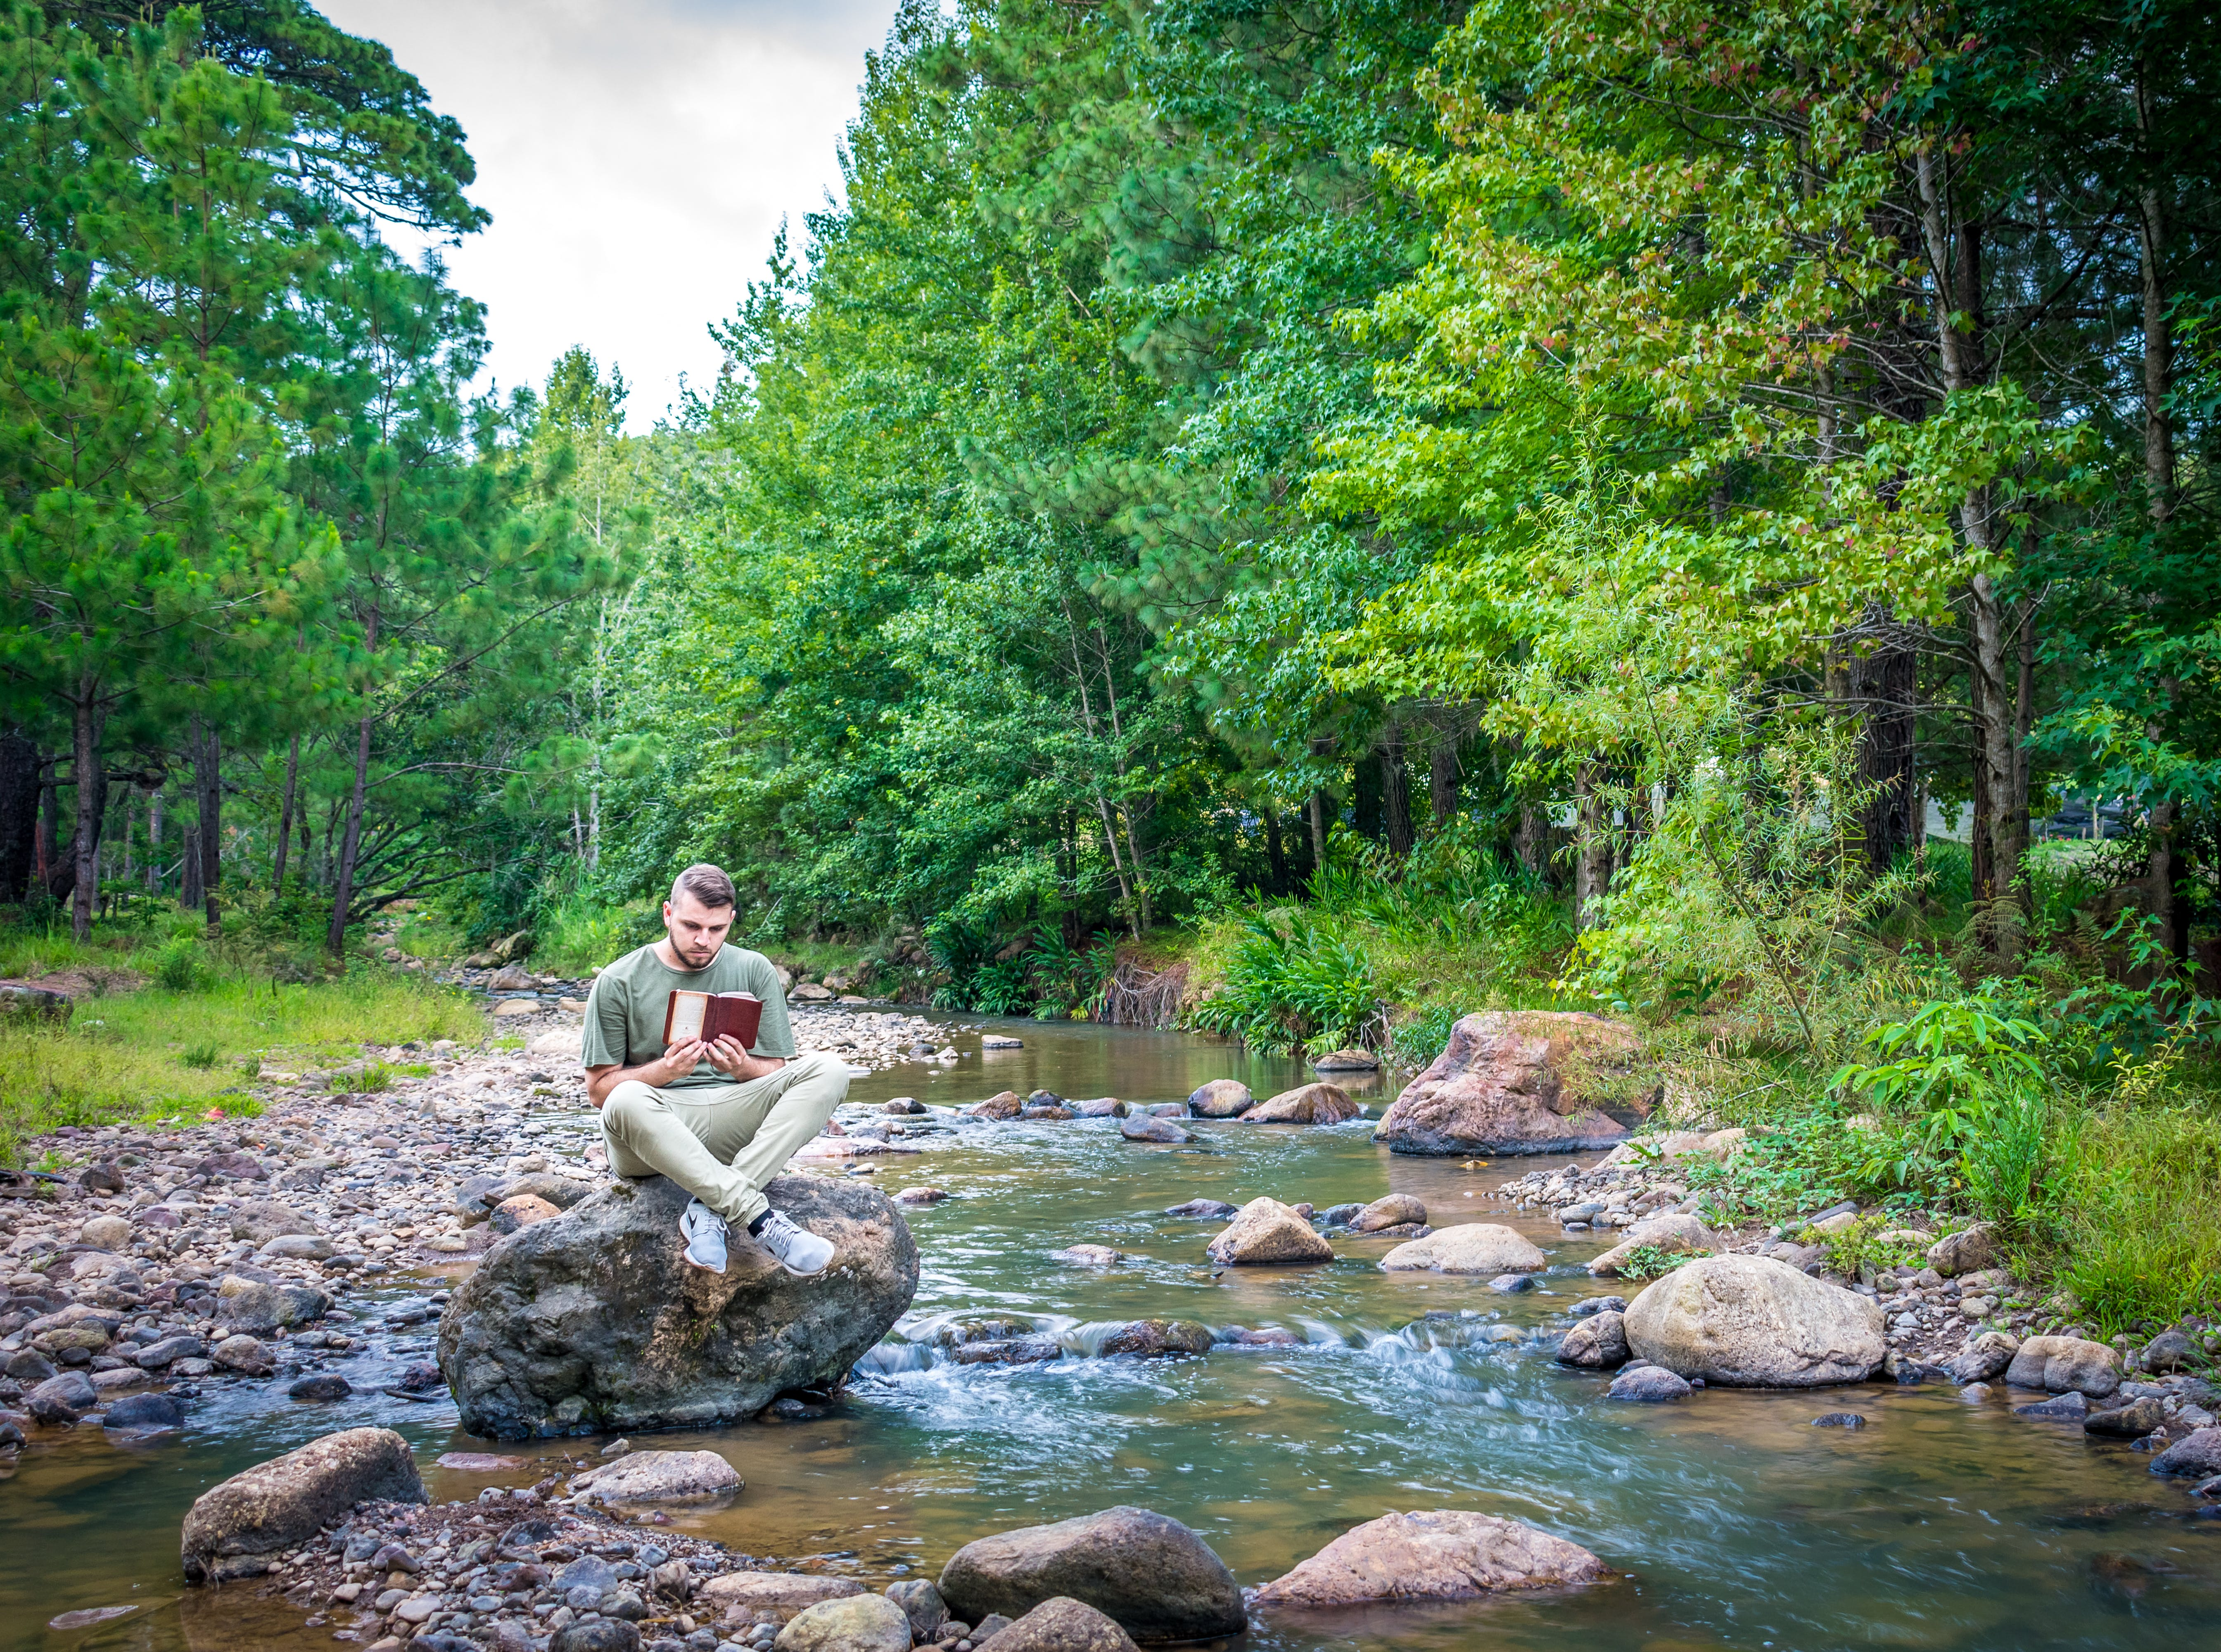 Man Sitting on Brown Stone Near Green Leafed Trees